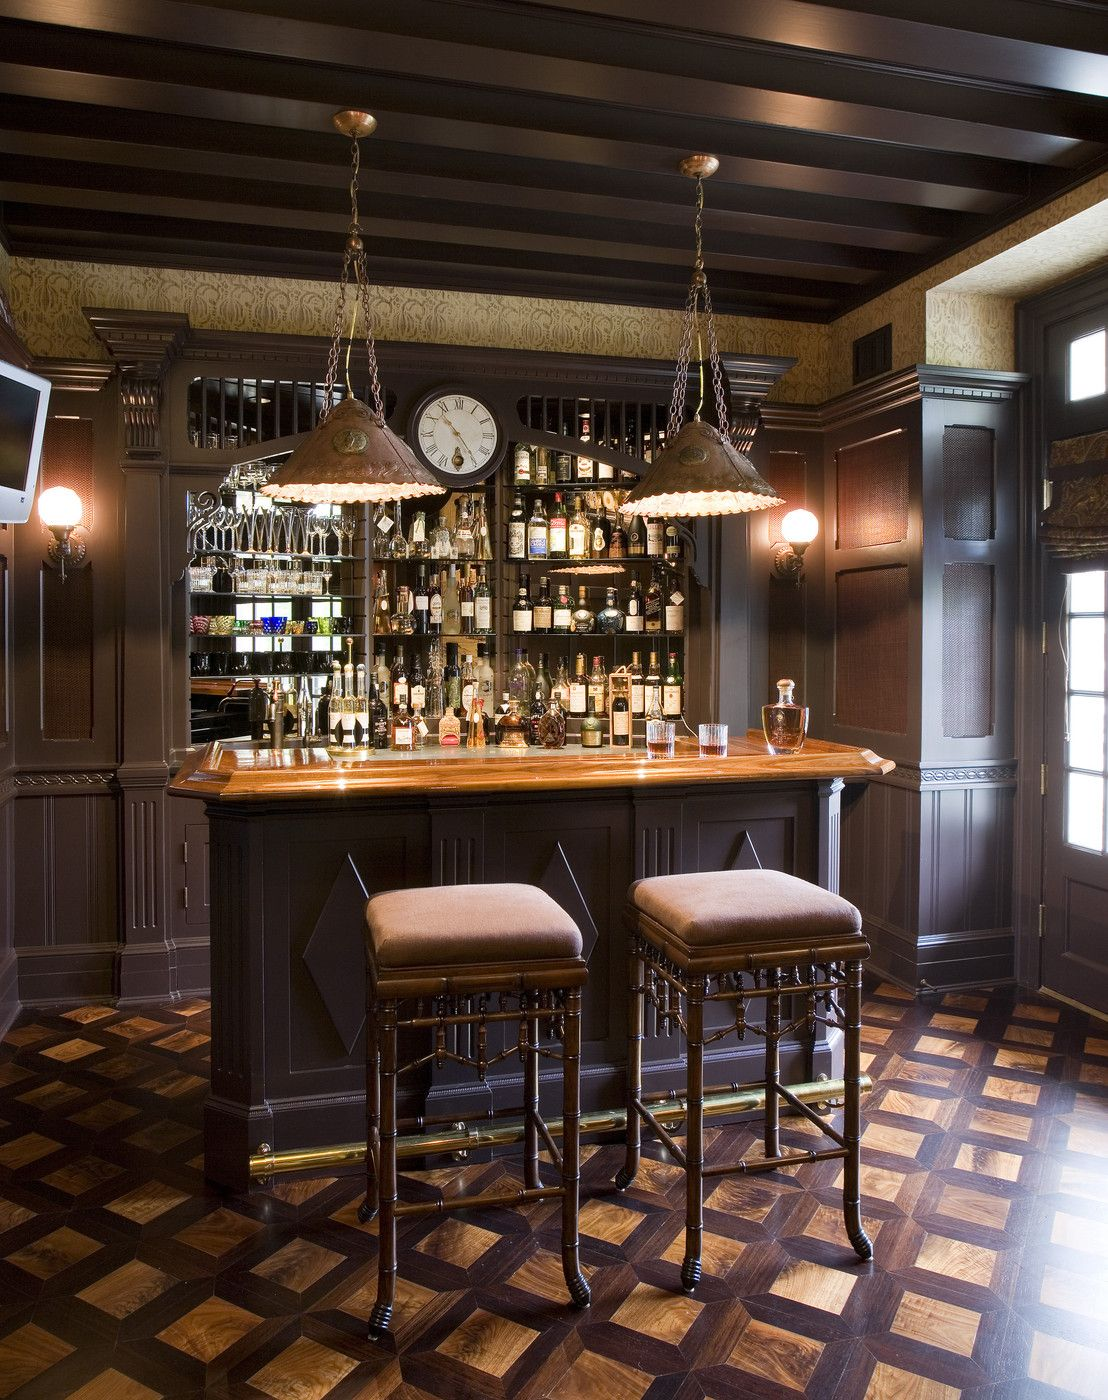 Home Bar Decor, Pub Interior, Pub Interior Design